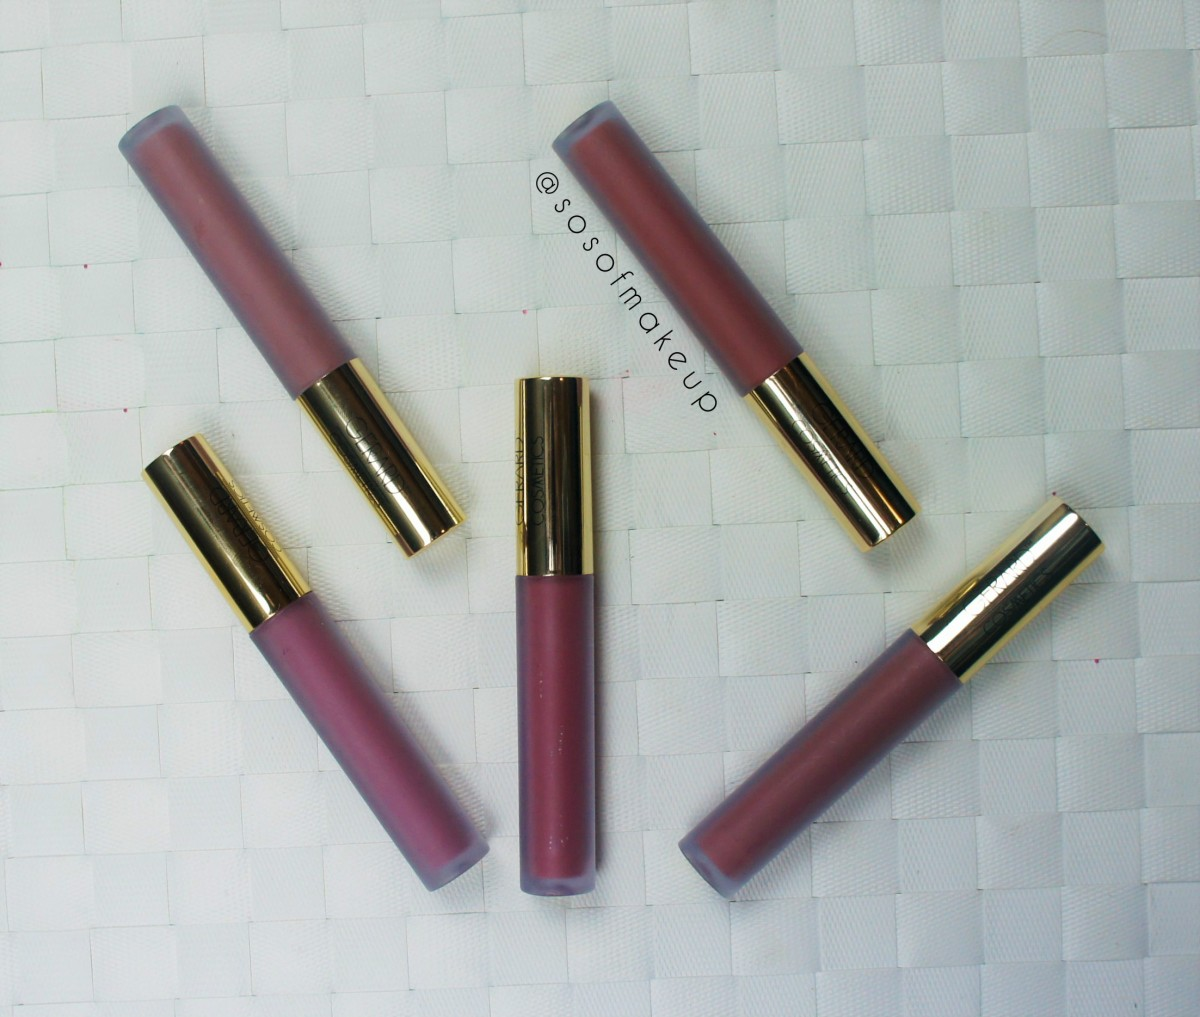 My fav matte liquid lipstick? Review & Swatches on 5 shades of Gerard Cosmetics Hydra Matte